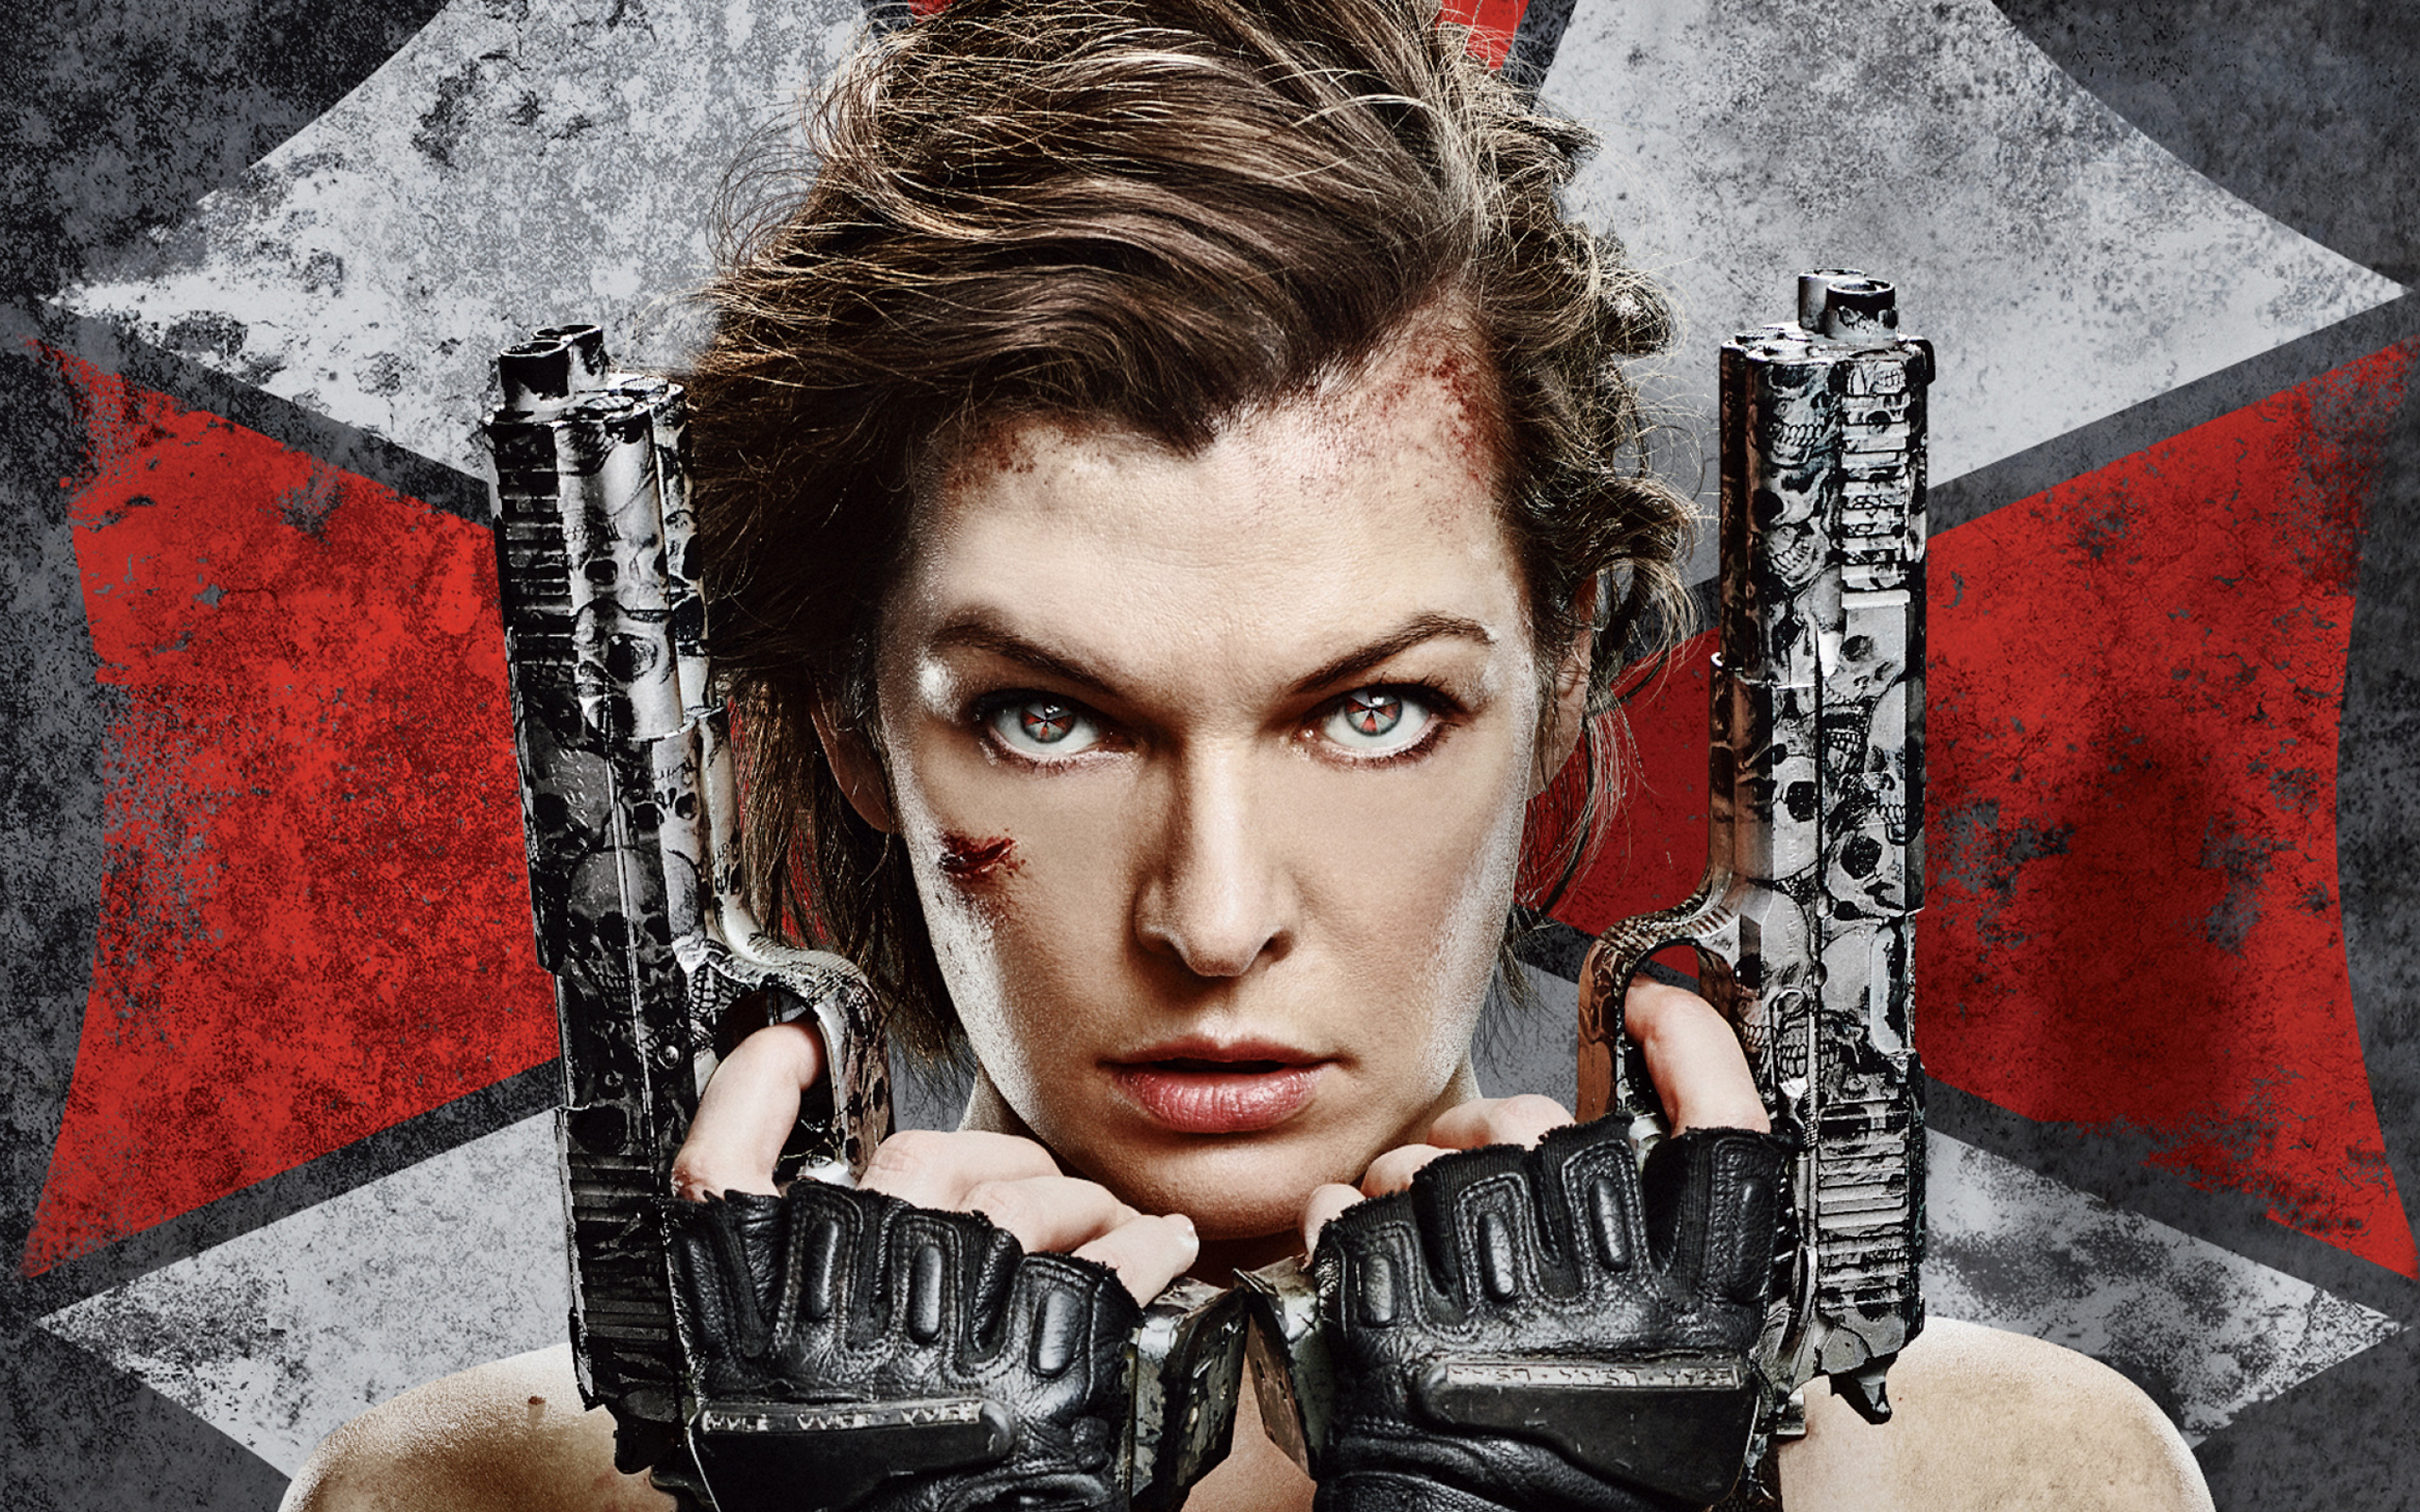 Resident Evil: The Final Chapter HD Wallpaper | Background Image |  2560x1600 | ID:726645 - Wallpaper Abyss